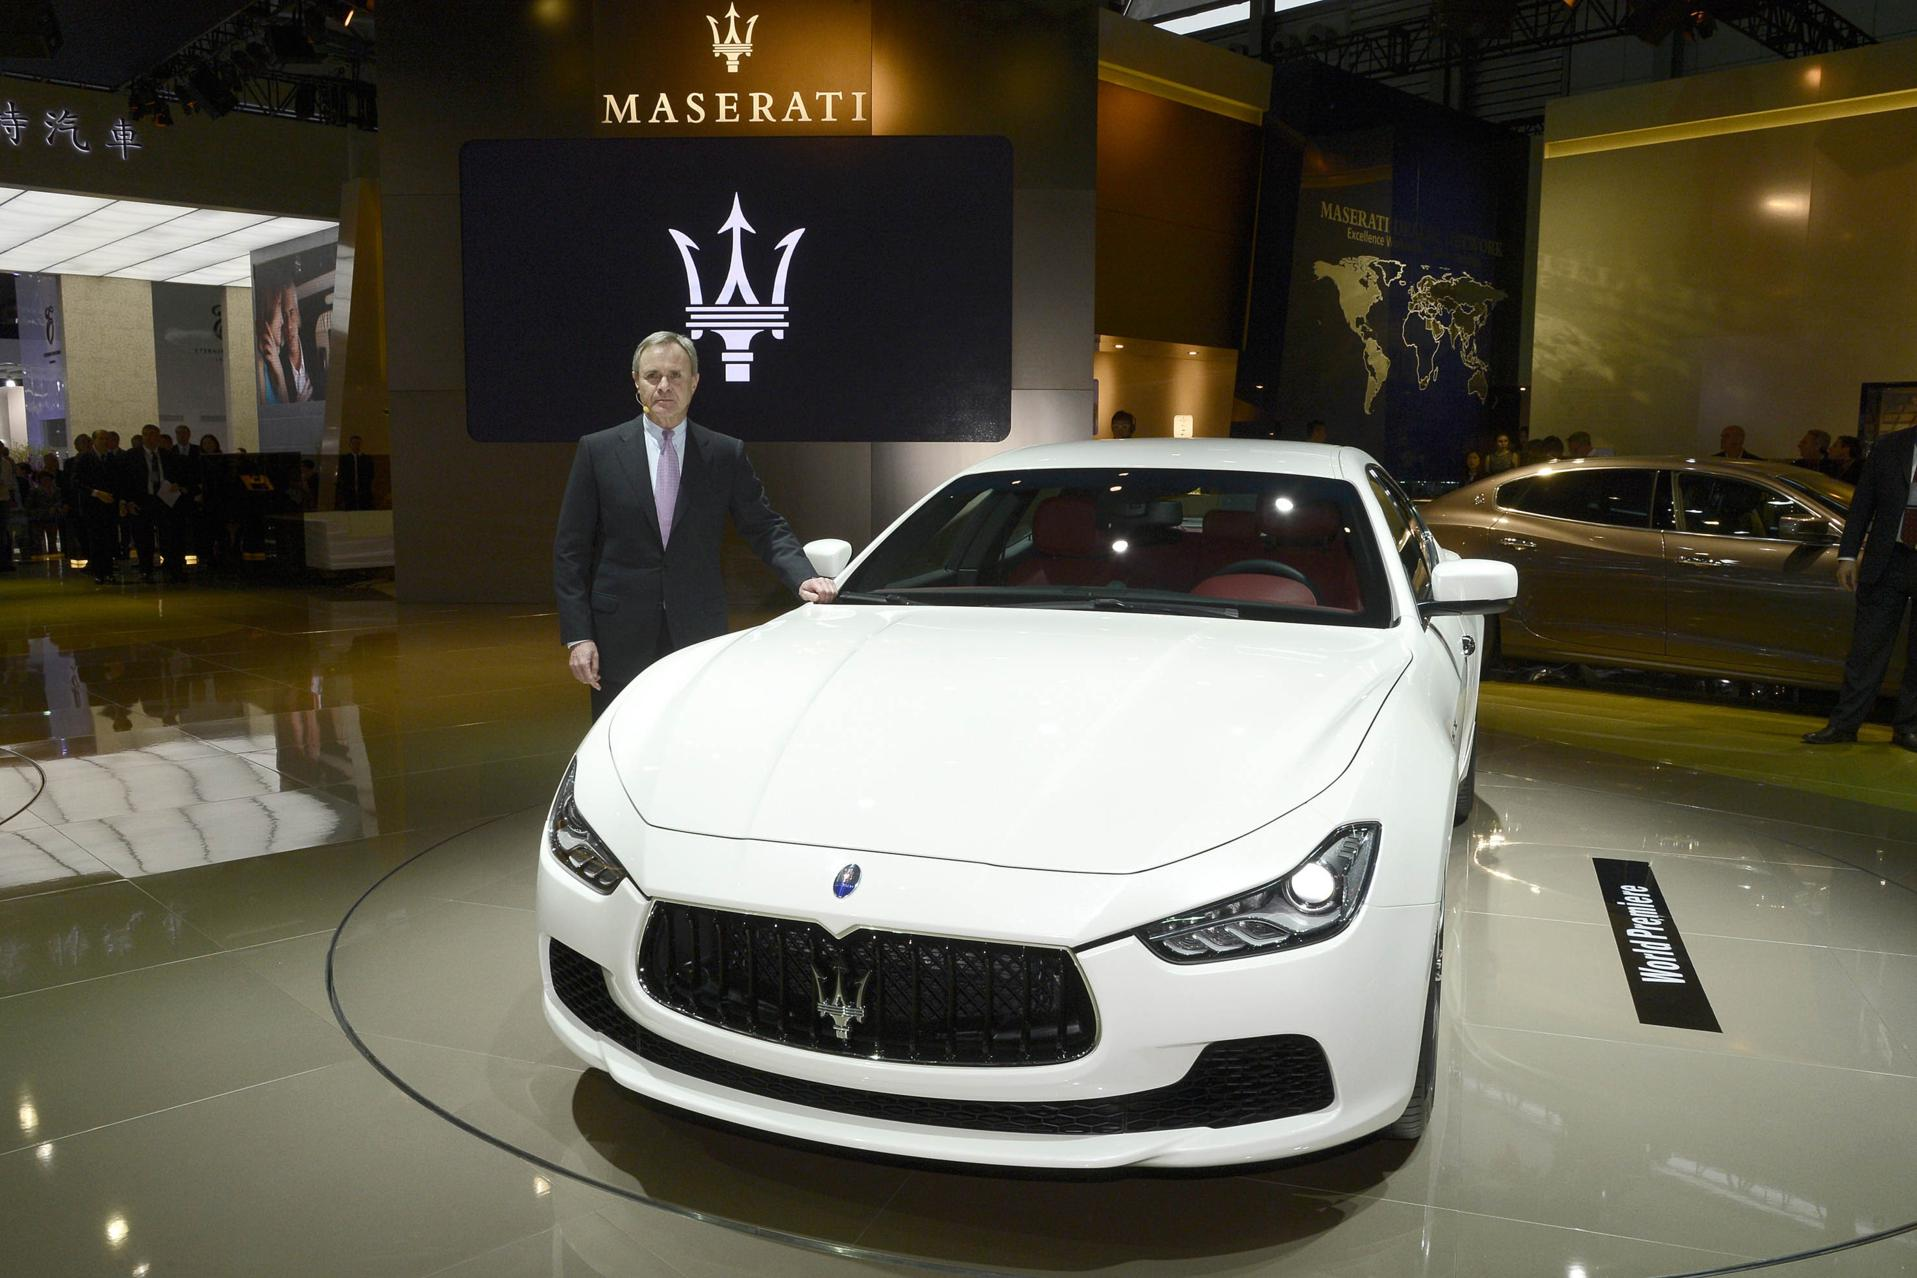 Maserati Ghibli premiere at the Shanghai Auto Show 2013